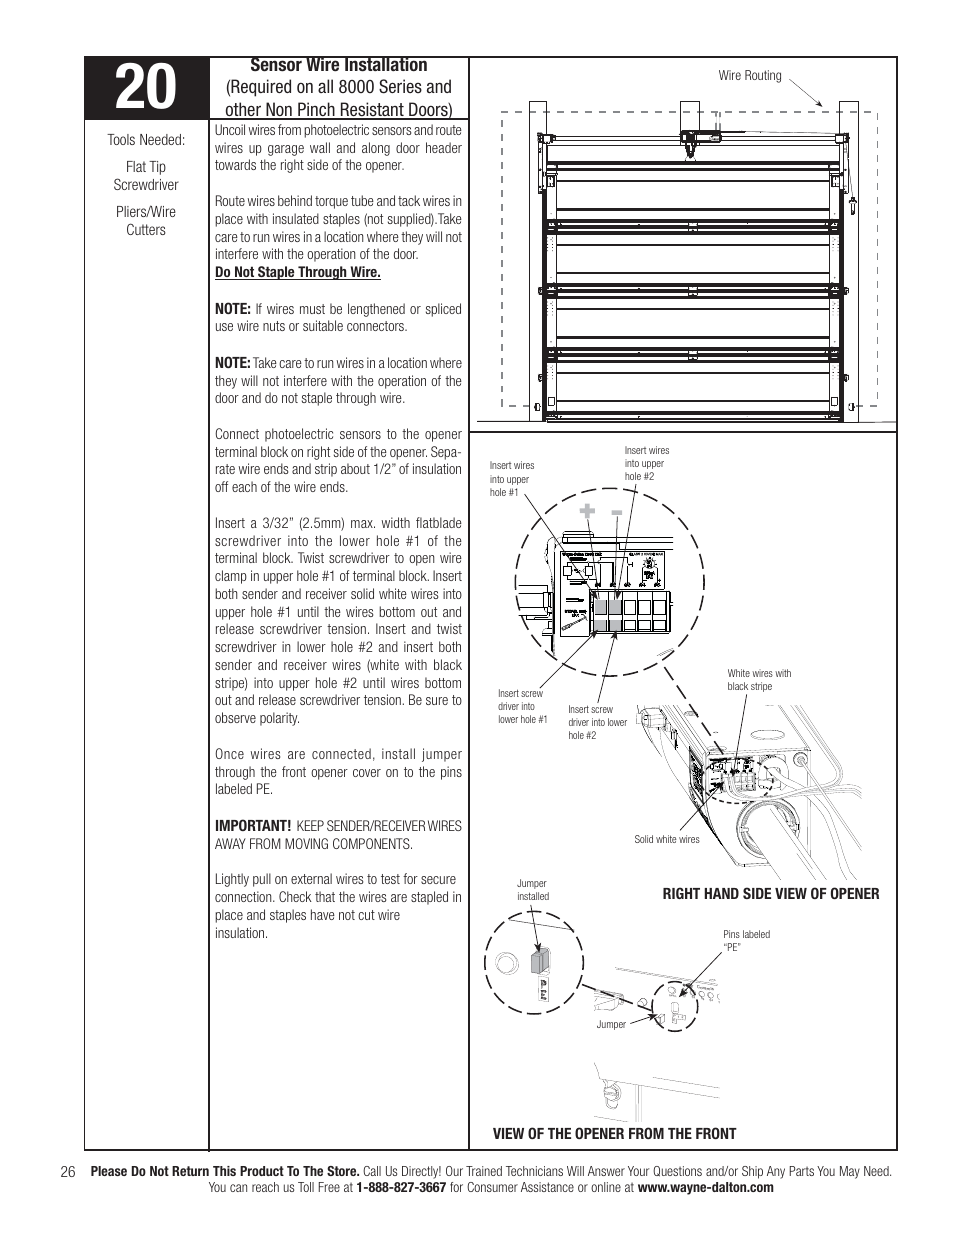 Sensor Wire Installation Wayne Dalton Idrive Pro 3790 Z User Photoelectric Wiring Diagram Manual Page 32 52